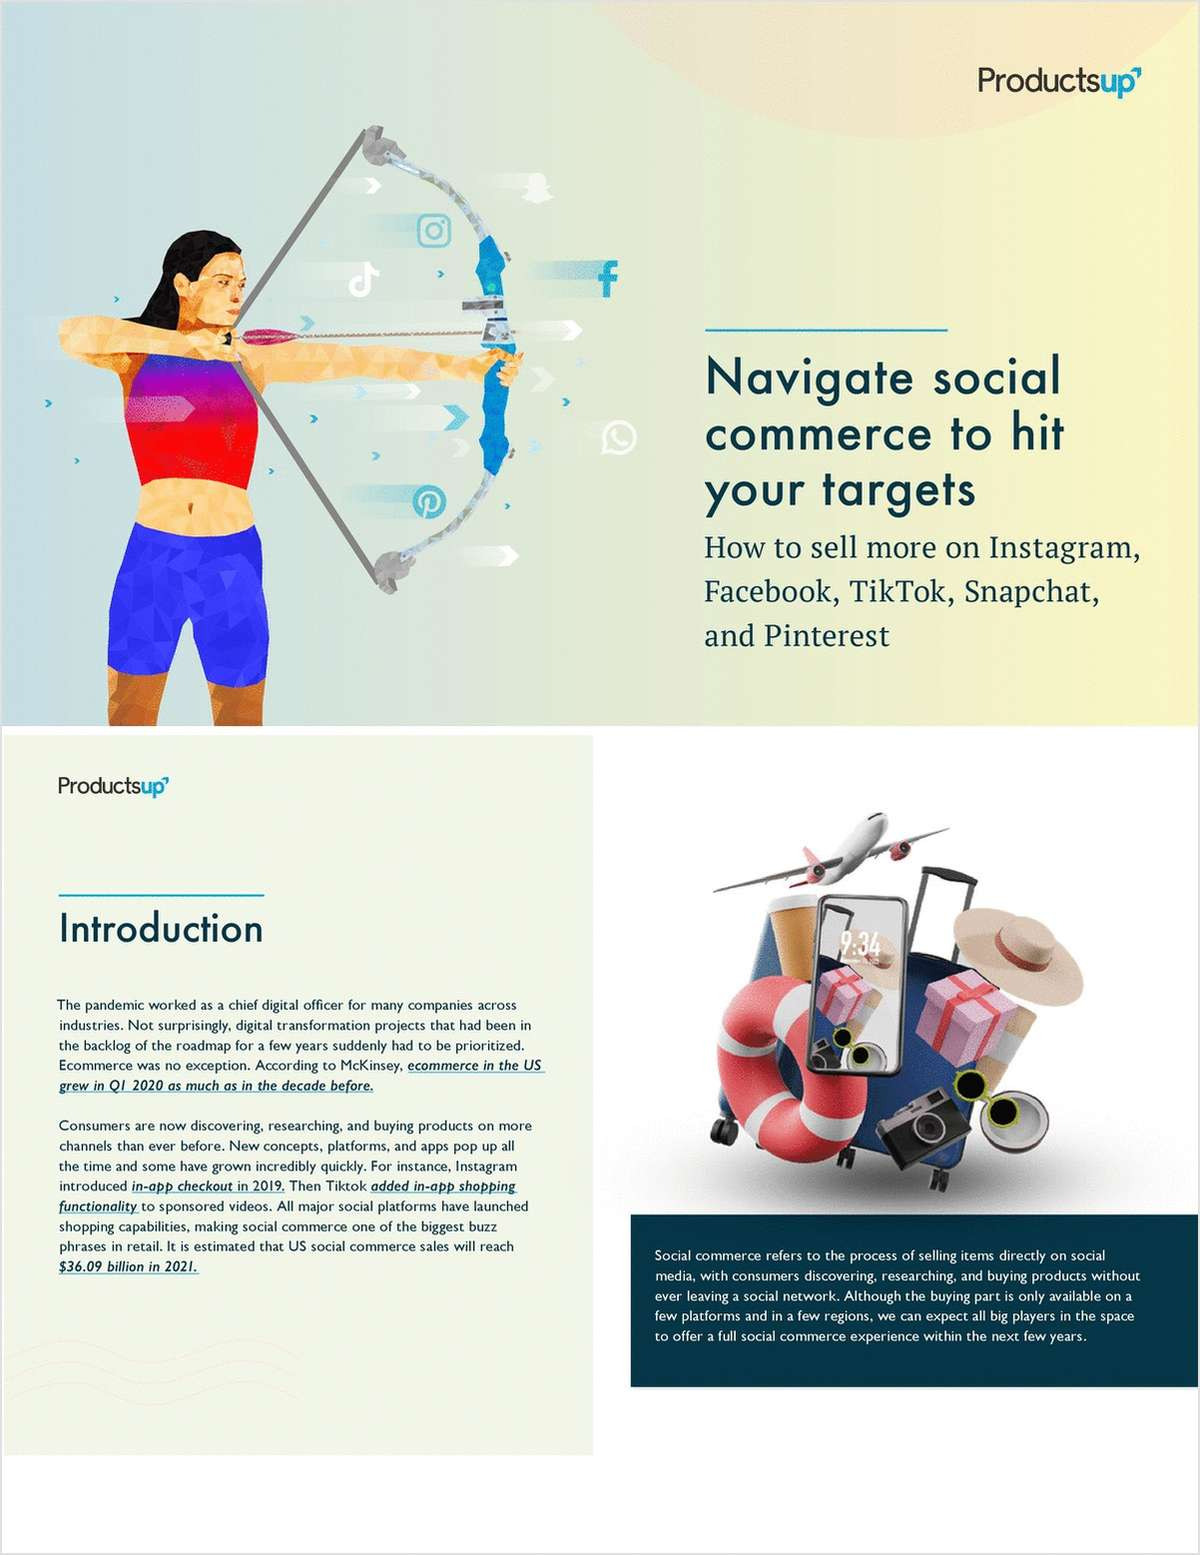 Navigate Social Commerce to Hit Your Targets